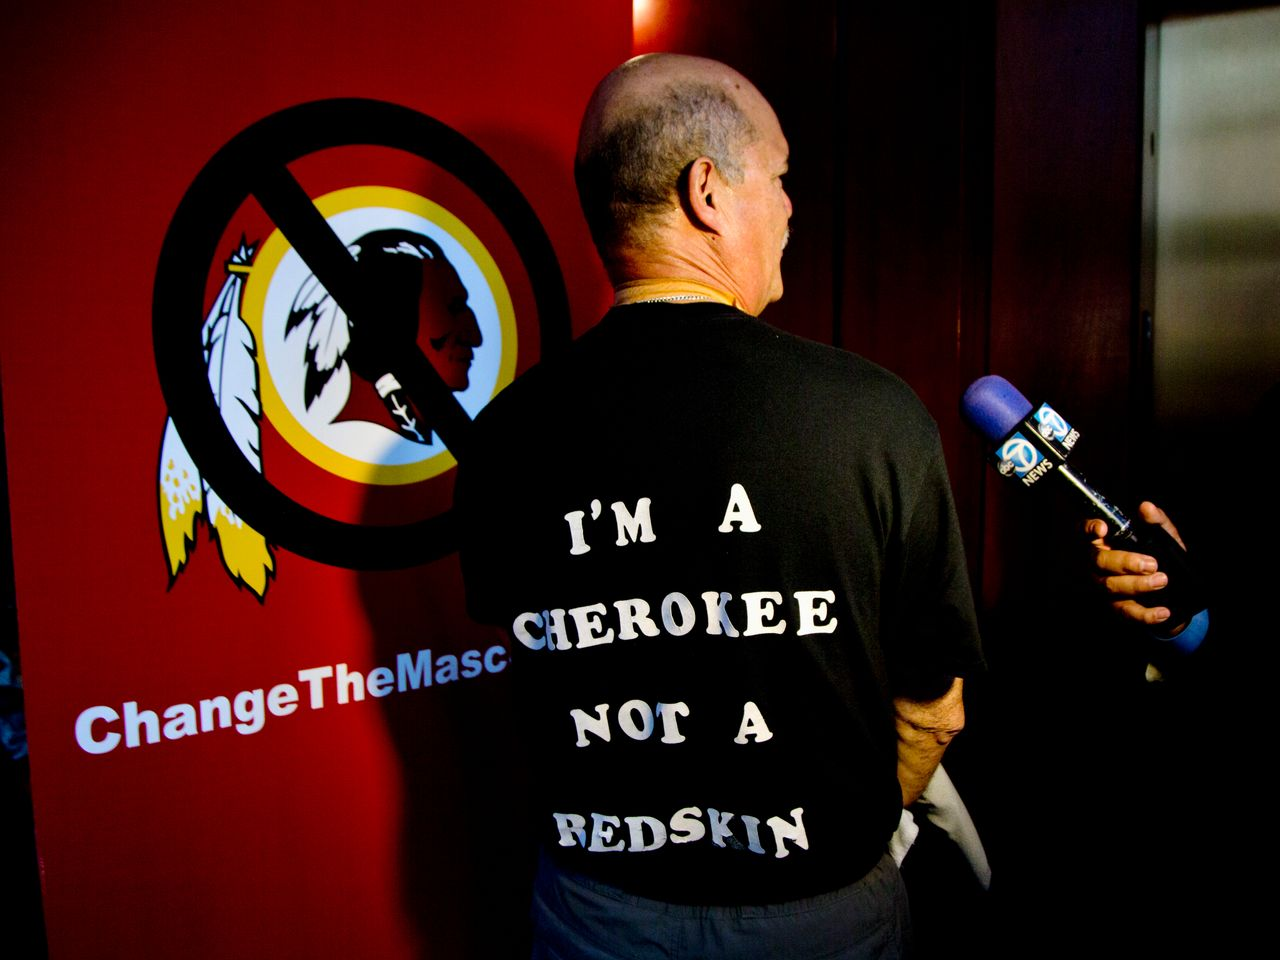 Verlin Deer In Water, a member of the Cherokee Nation of Oklahoma shows his t-shirt during an interview in Washington, Monday, Oct. 7, 2013, calling for the Washington Redskins NFL football team to change its name.